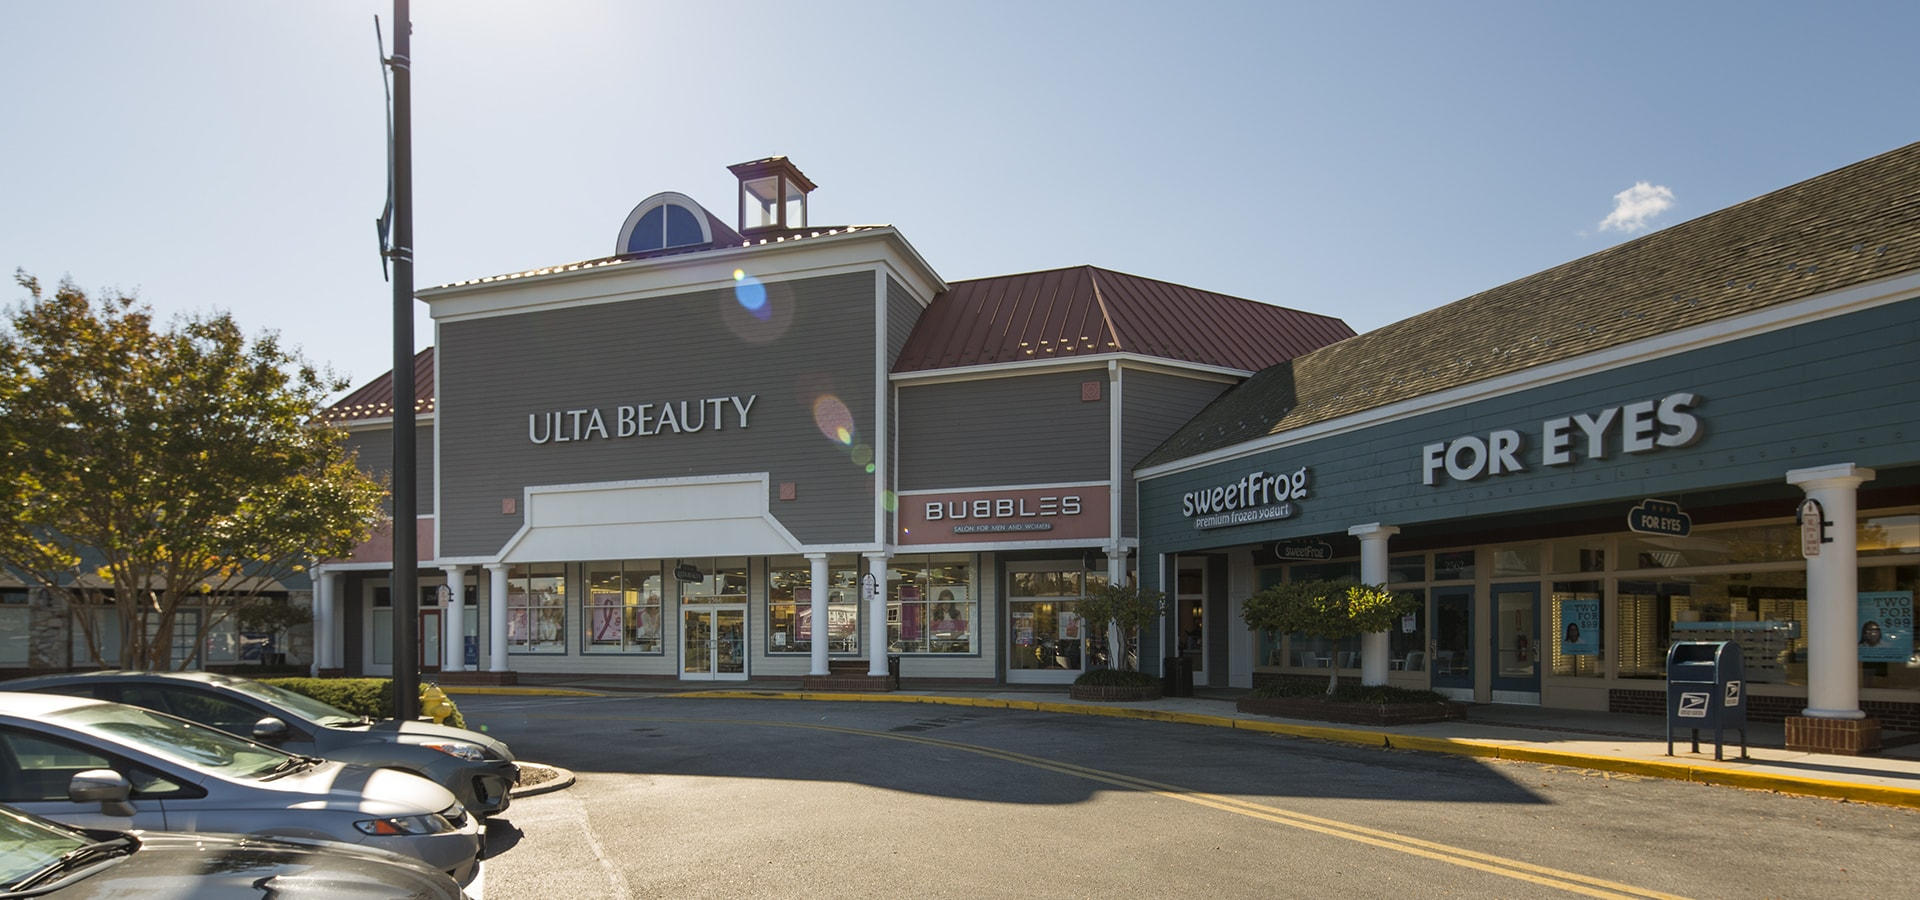 Ulta Beauty | Shops Near Me in Annapolis MD | Annapolis